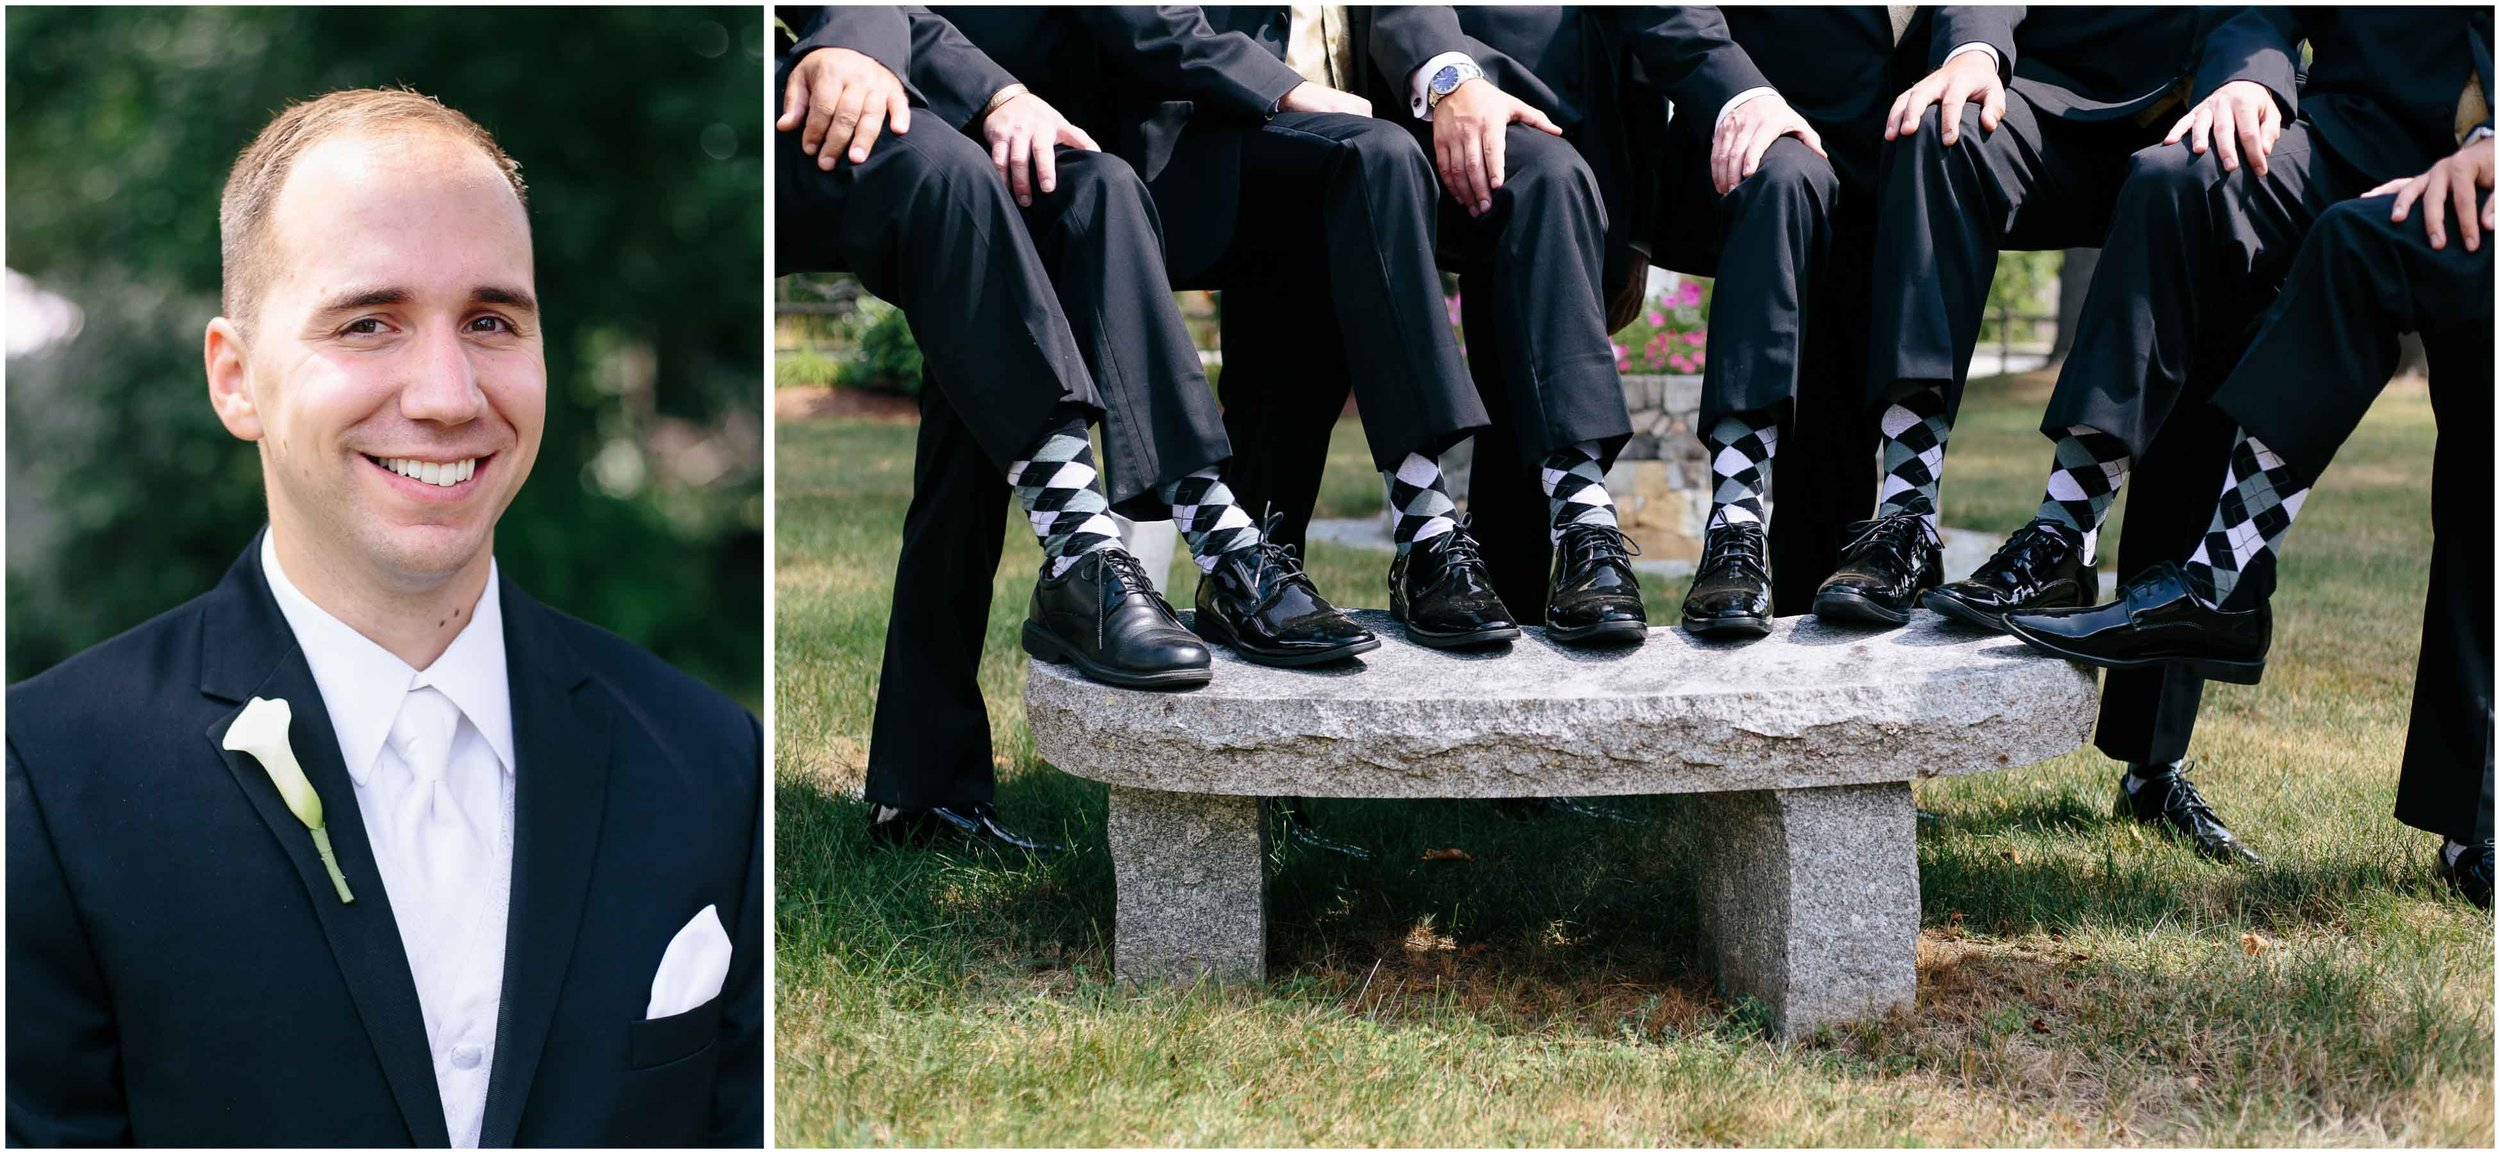 Chic New Hampshire Wedding at Manchester Country Club Bedford - groom and groomsmen